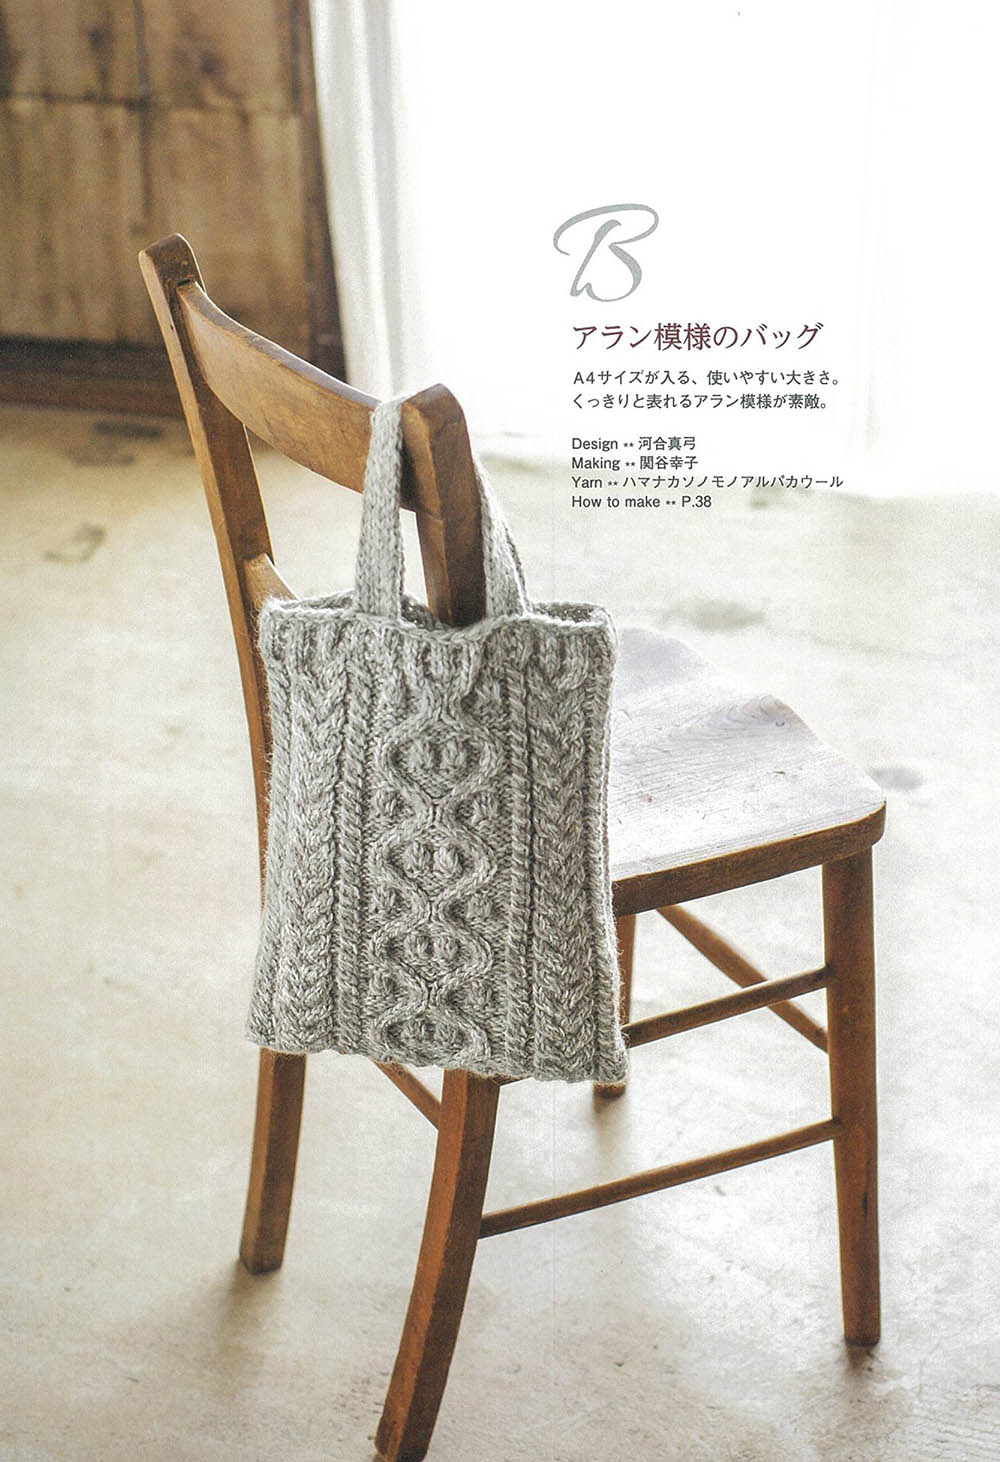 Natural knit book in natural materials